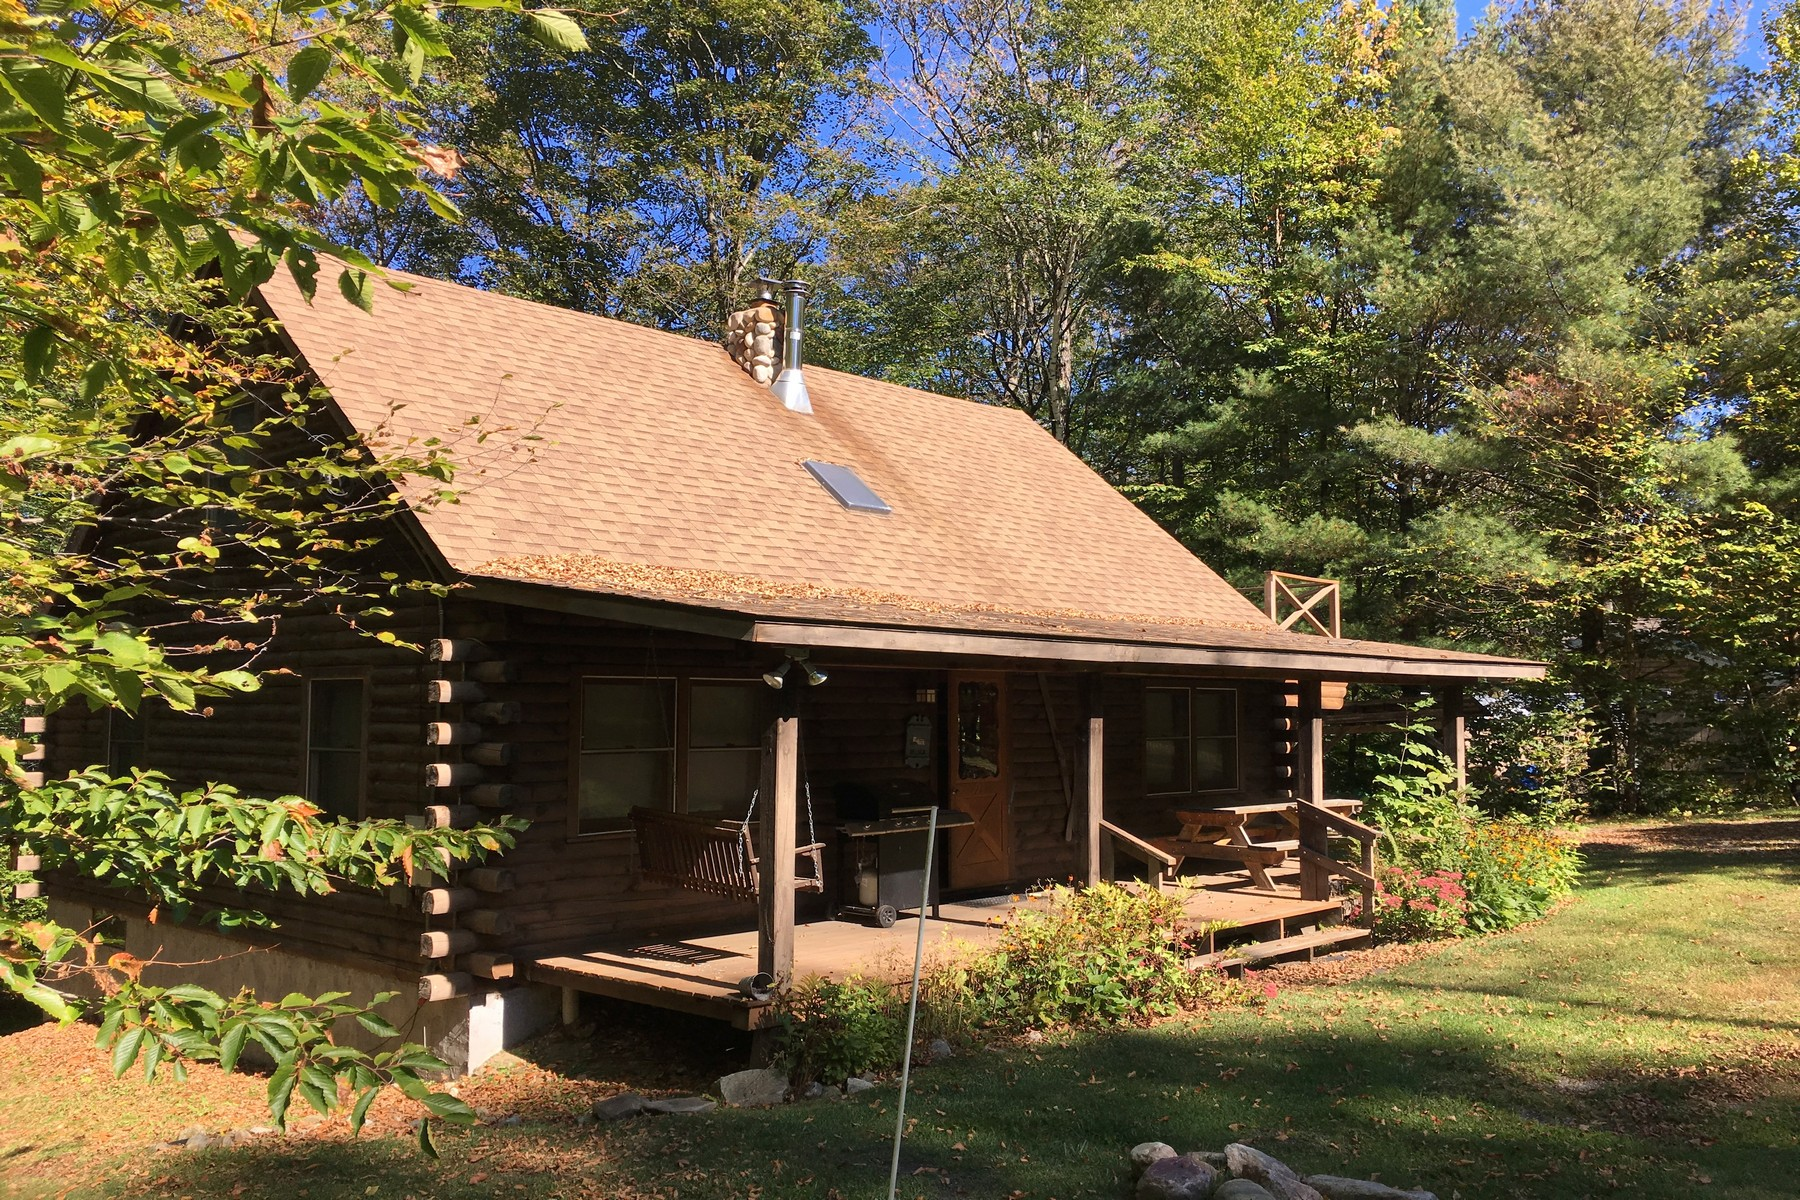 Casa Unifamiliar por un Venta en Cozy Log Cabin - Close to Stratton Mountain 92 Edie, Jamaica, Vermont, 05343 Estados Unidos